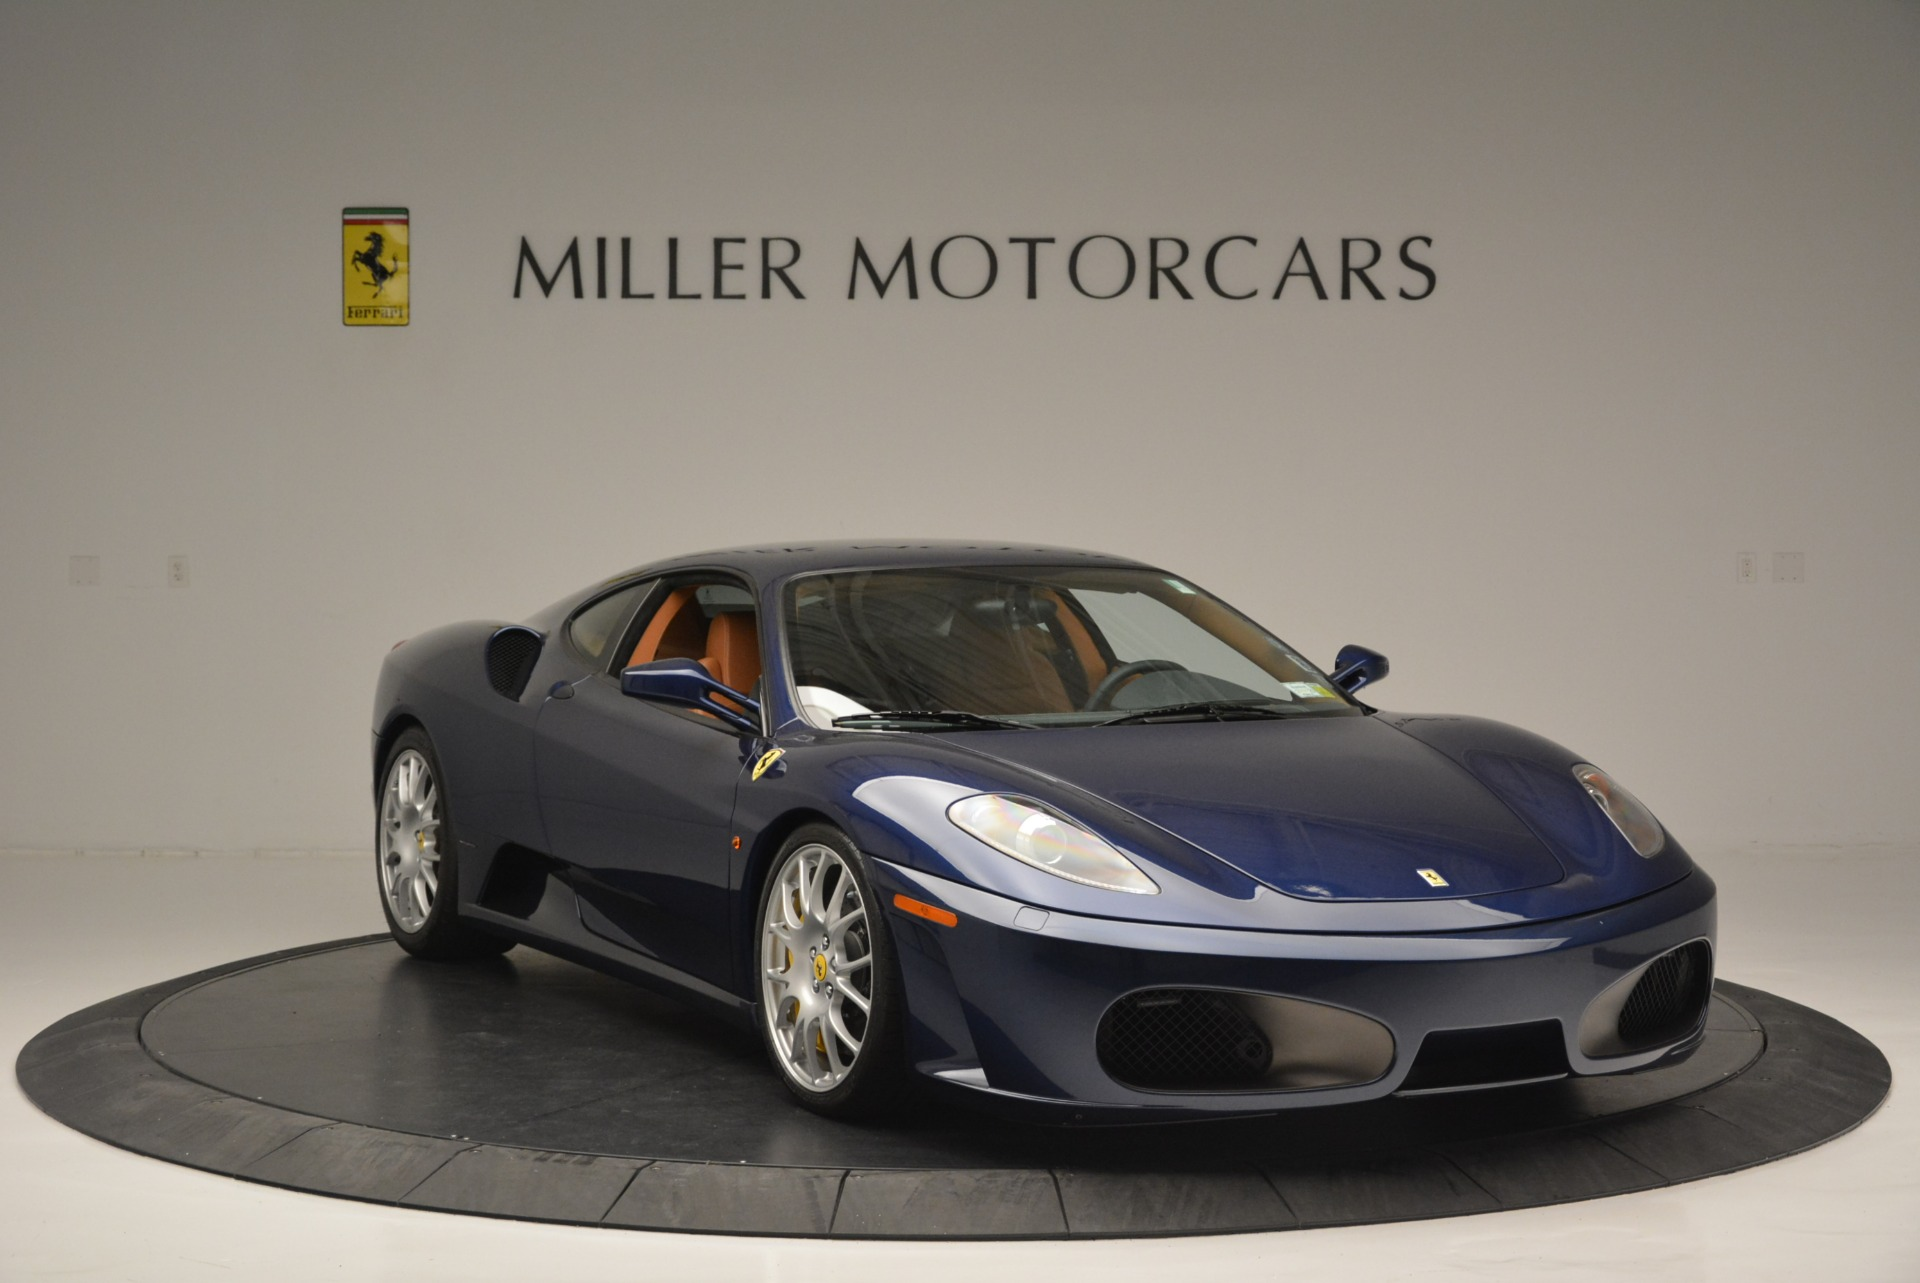 Used 2009 Ferrari F430 6-Speed Manual For Sale In Westport, CT 2466_p11